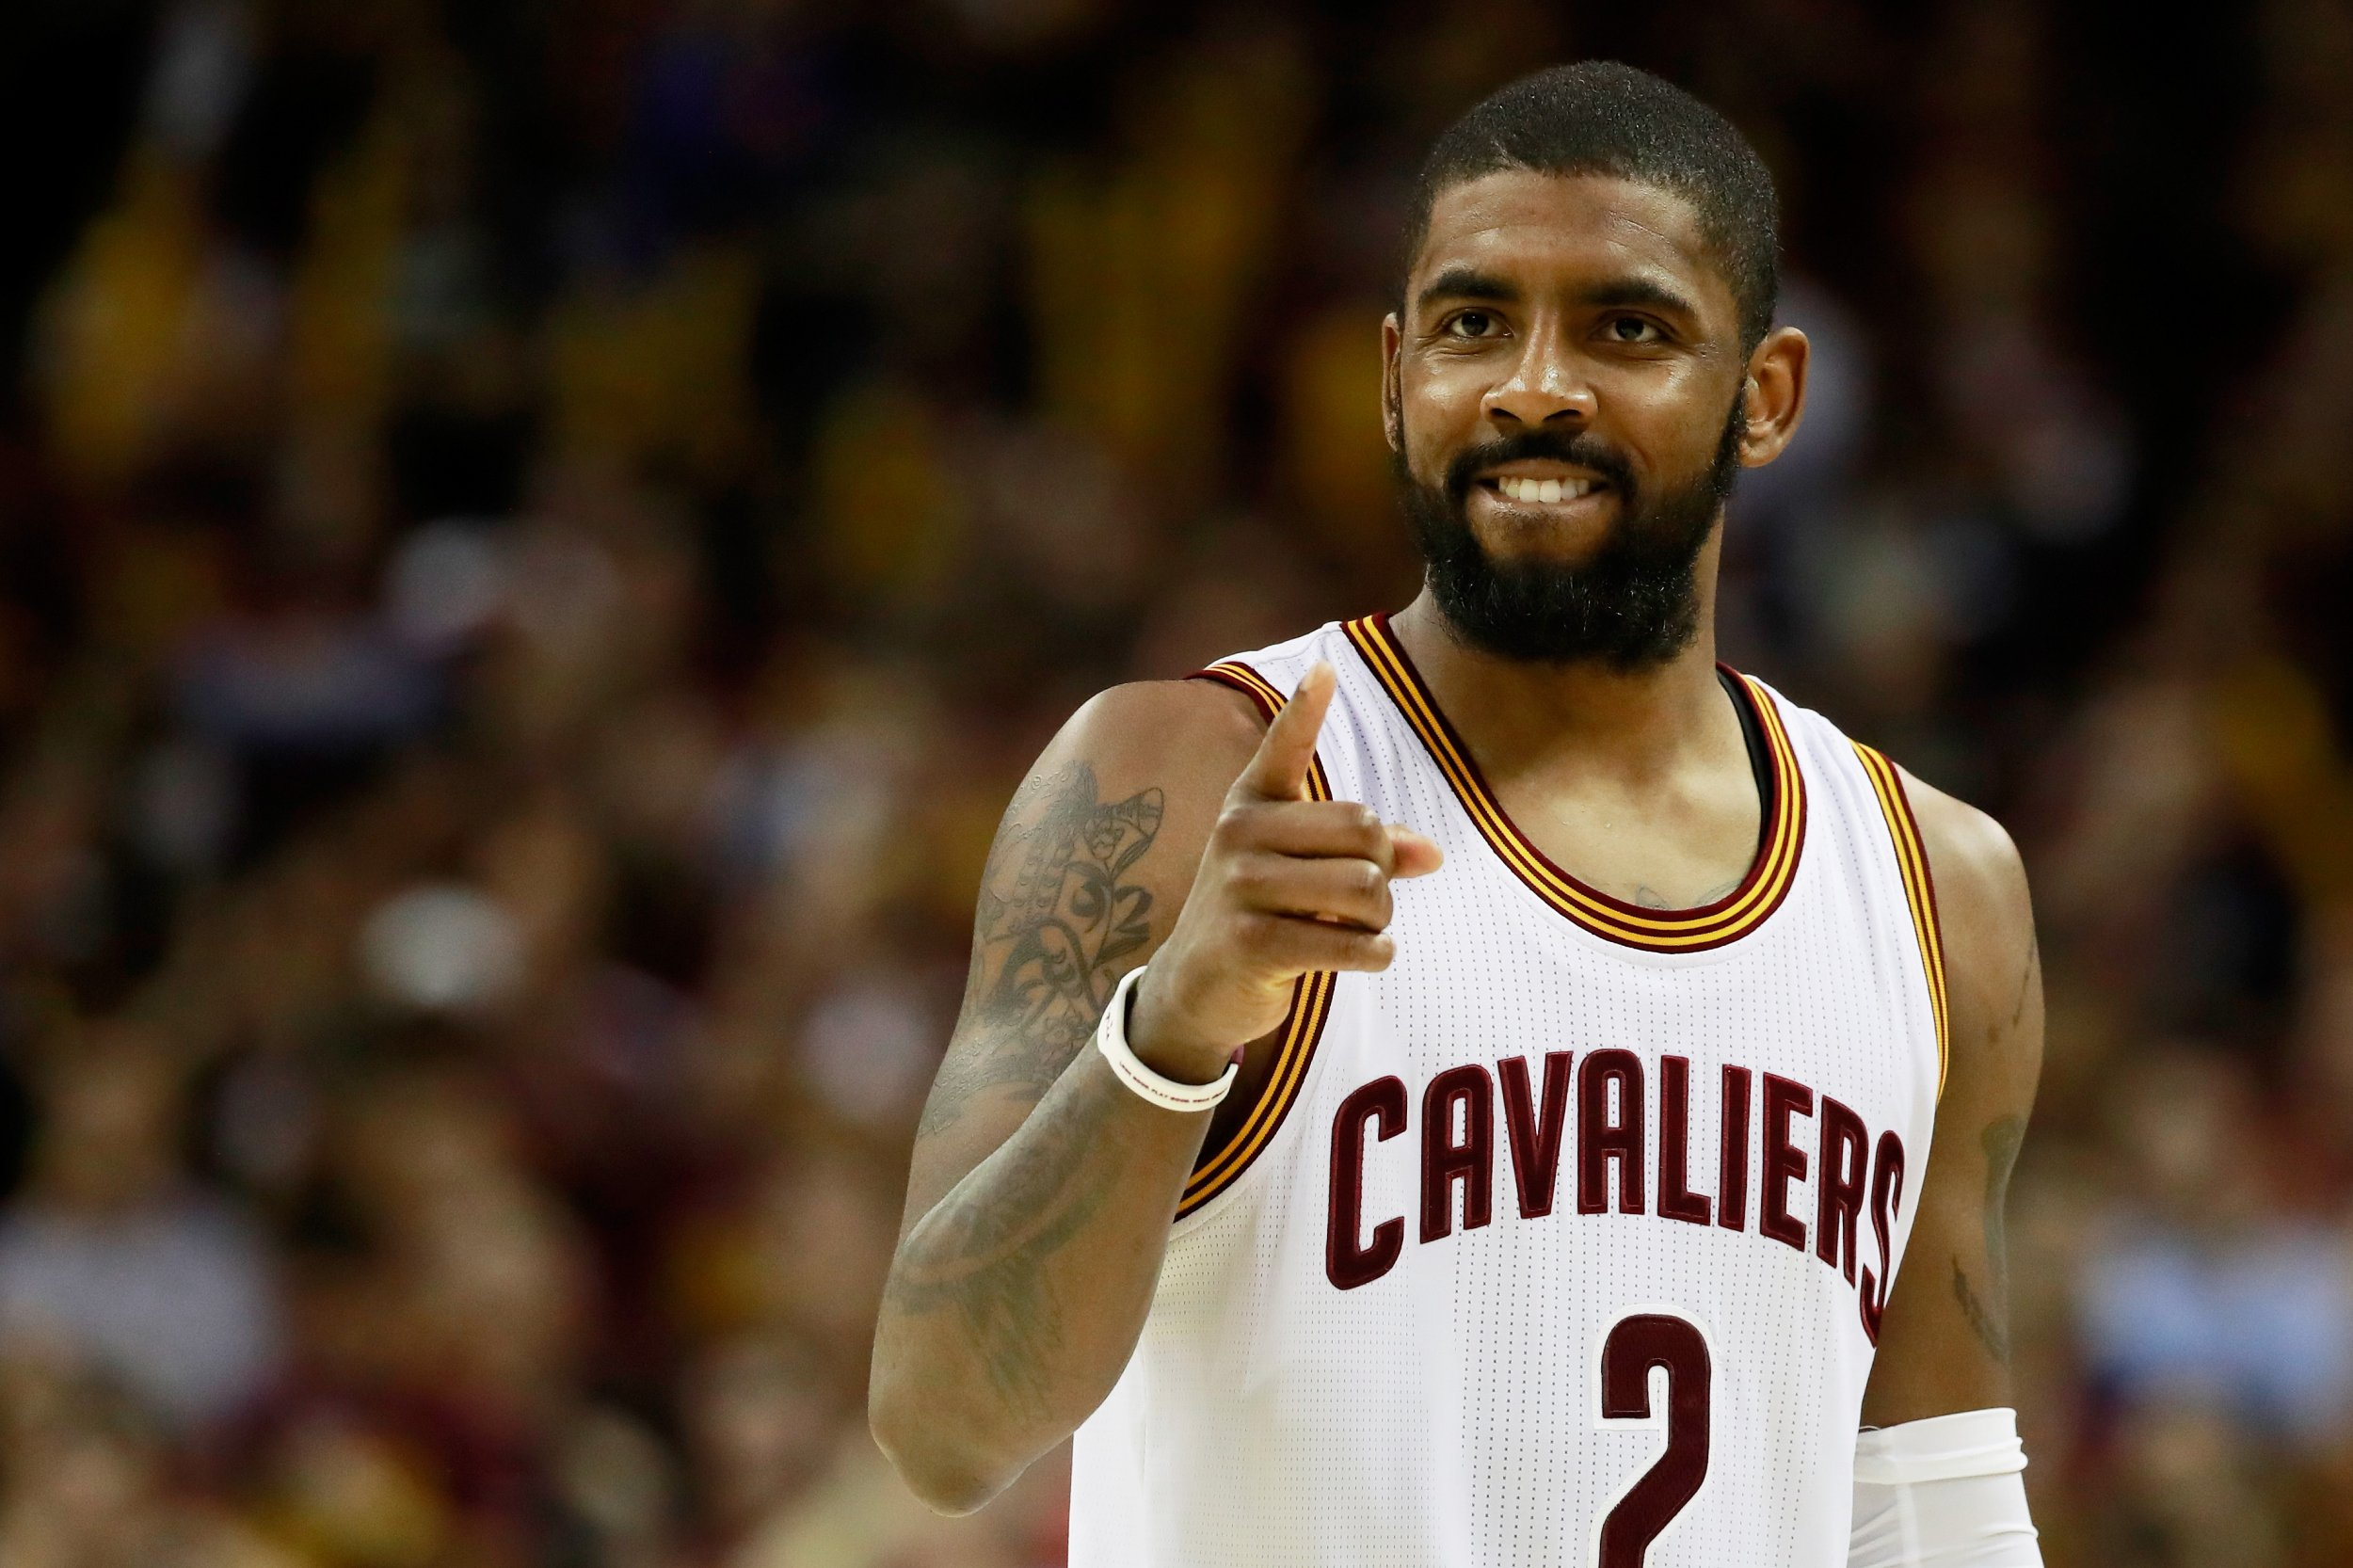 Cleveland Cavaliers point guard Kyrie Irving.